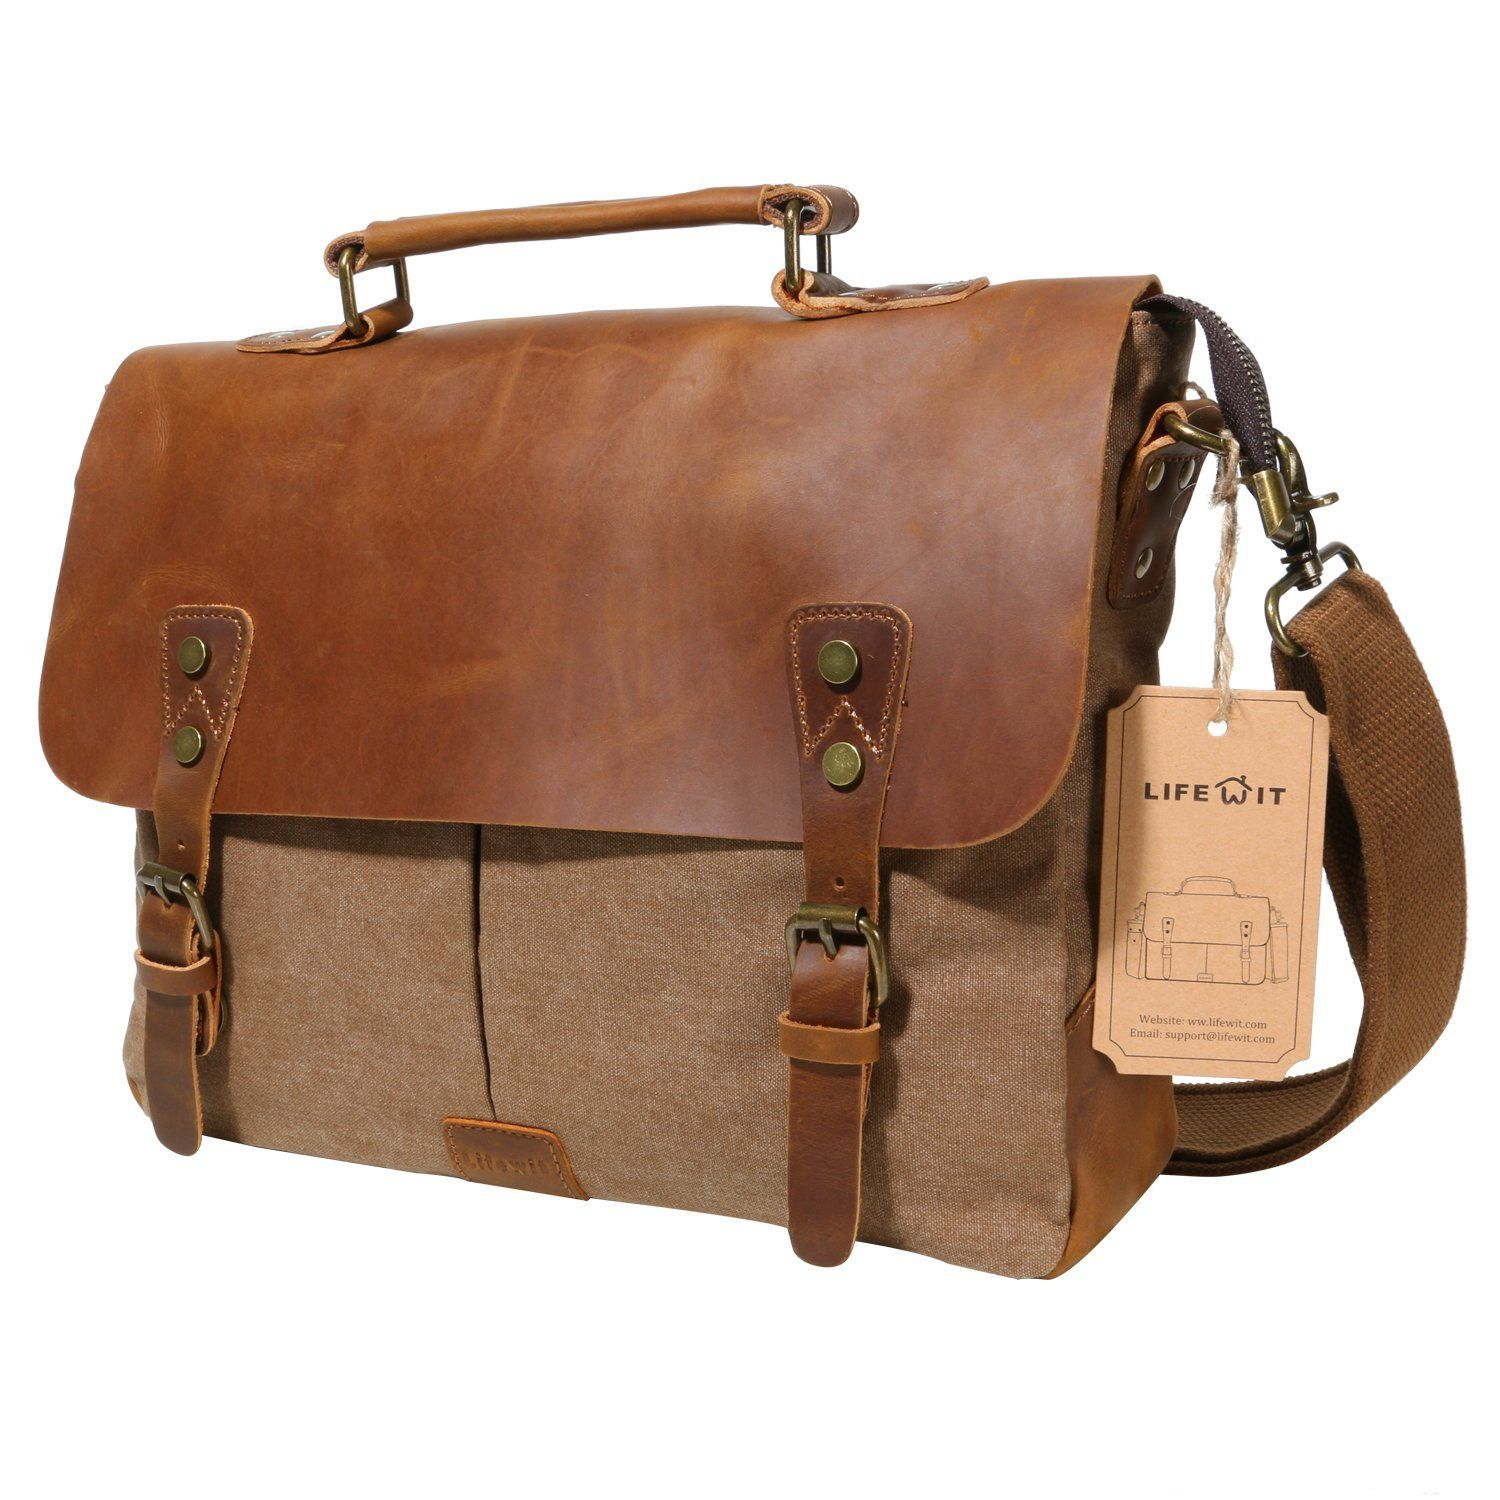 Natural Mens and Womens Computer Bags Handbags Shoulder Bags Briefcases Suitable for 15 Inch Computers